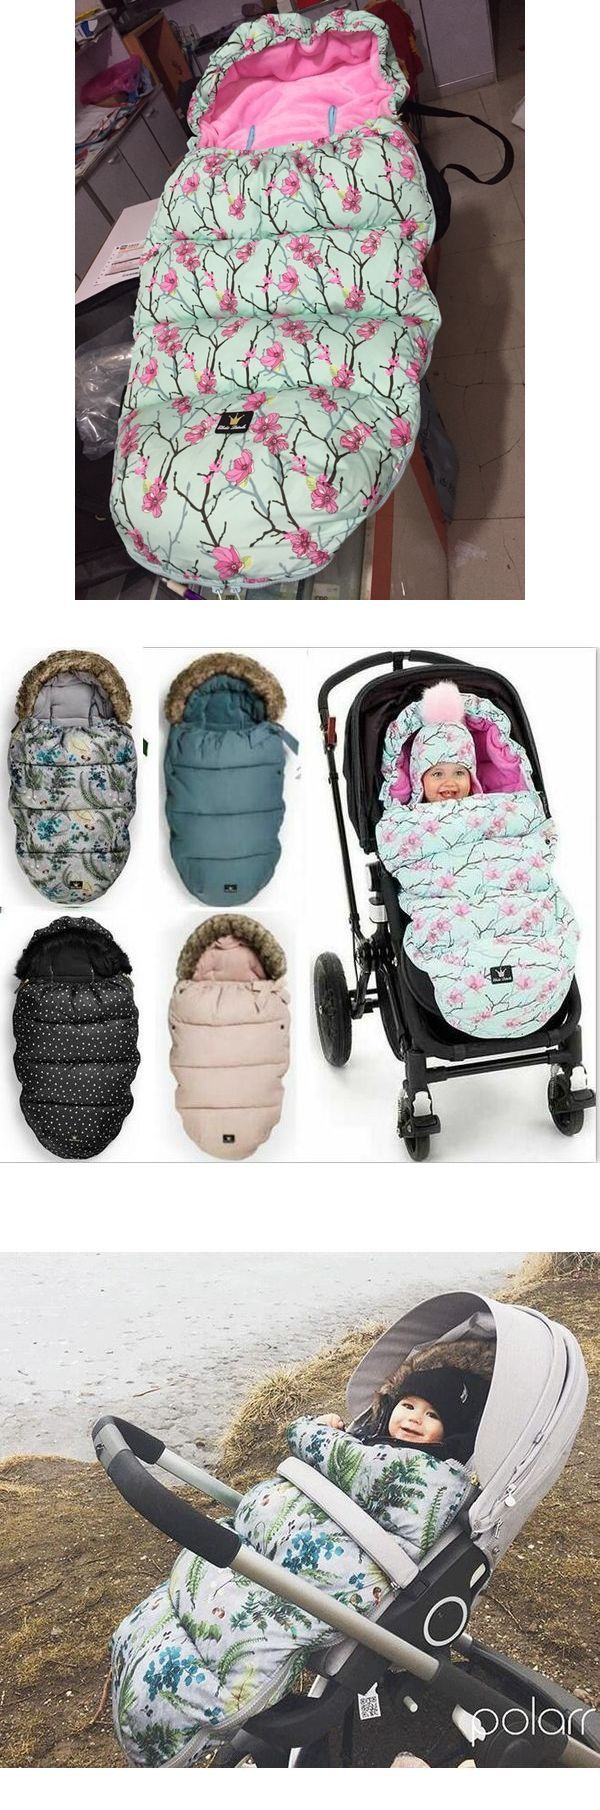 Zip Sky Blue with Silver Zipper (With images) Baby prams